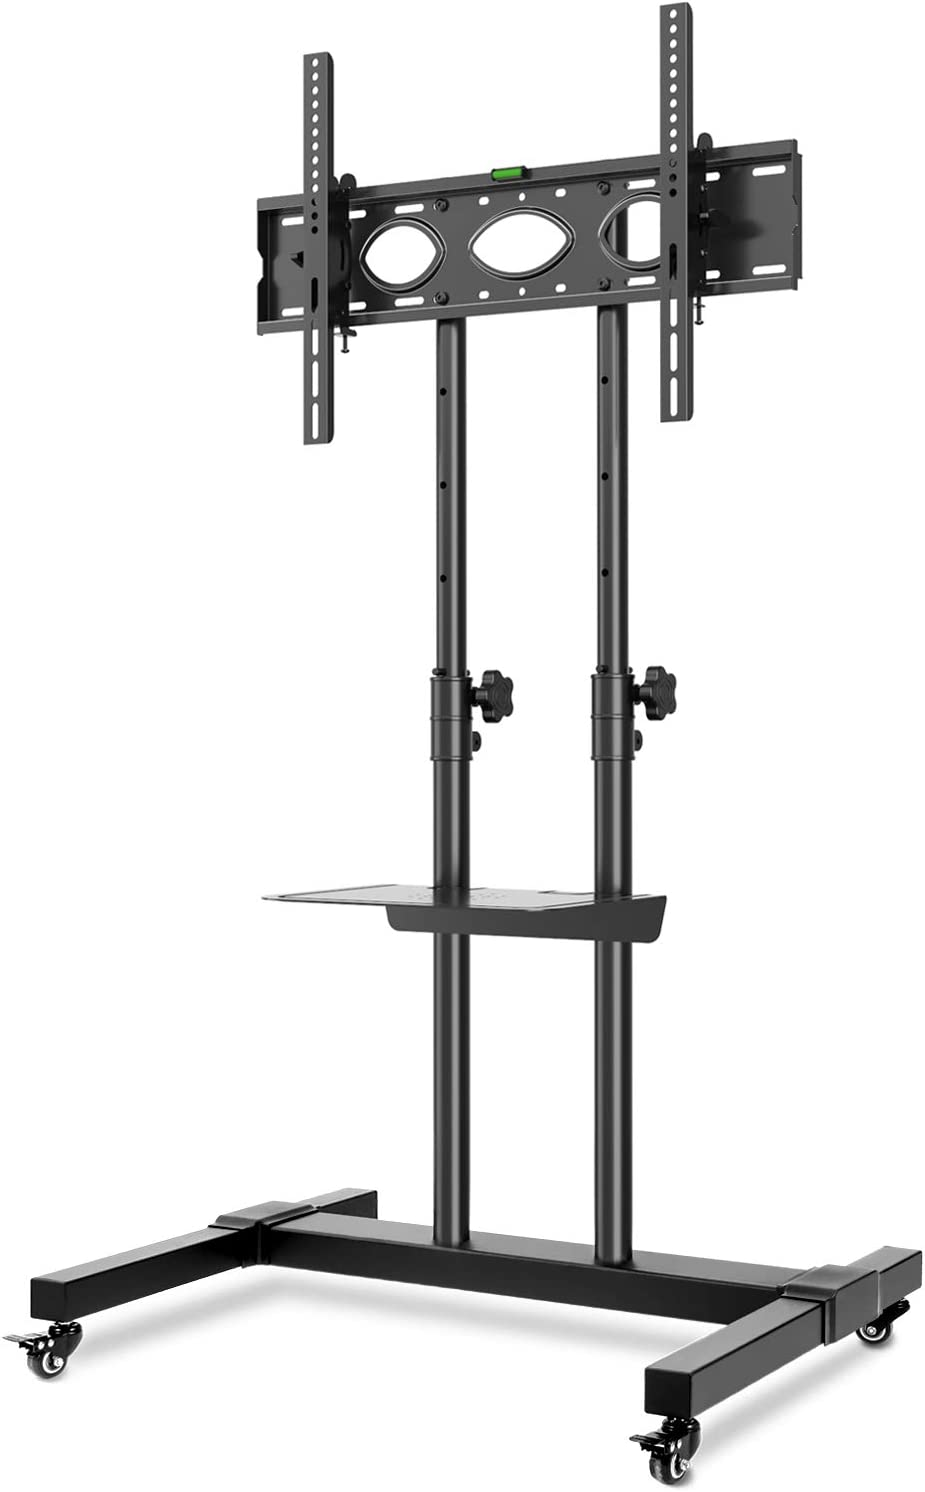 Rfiver Tall Mobile Tv Stand Rolling Movable For Most Amazon Co Uk Electronics